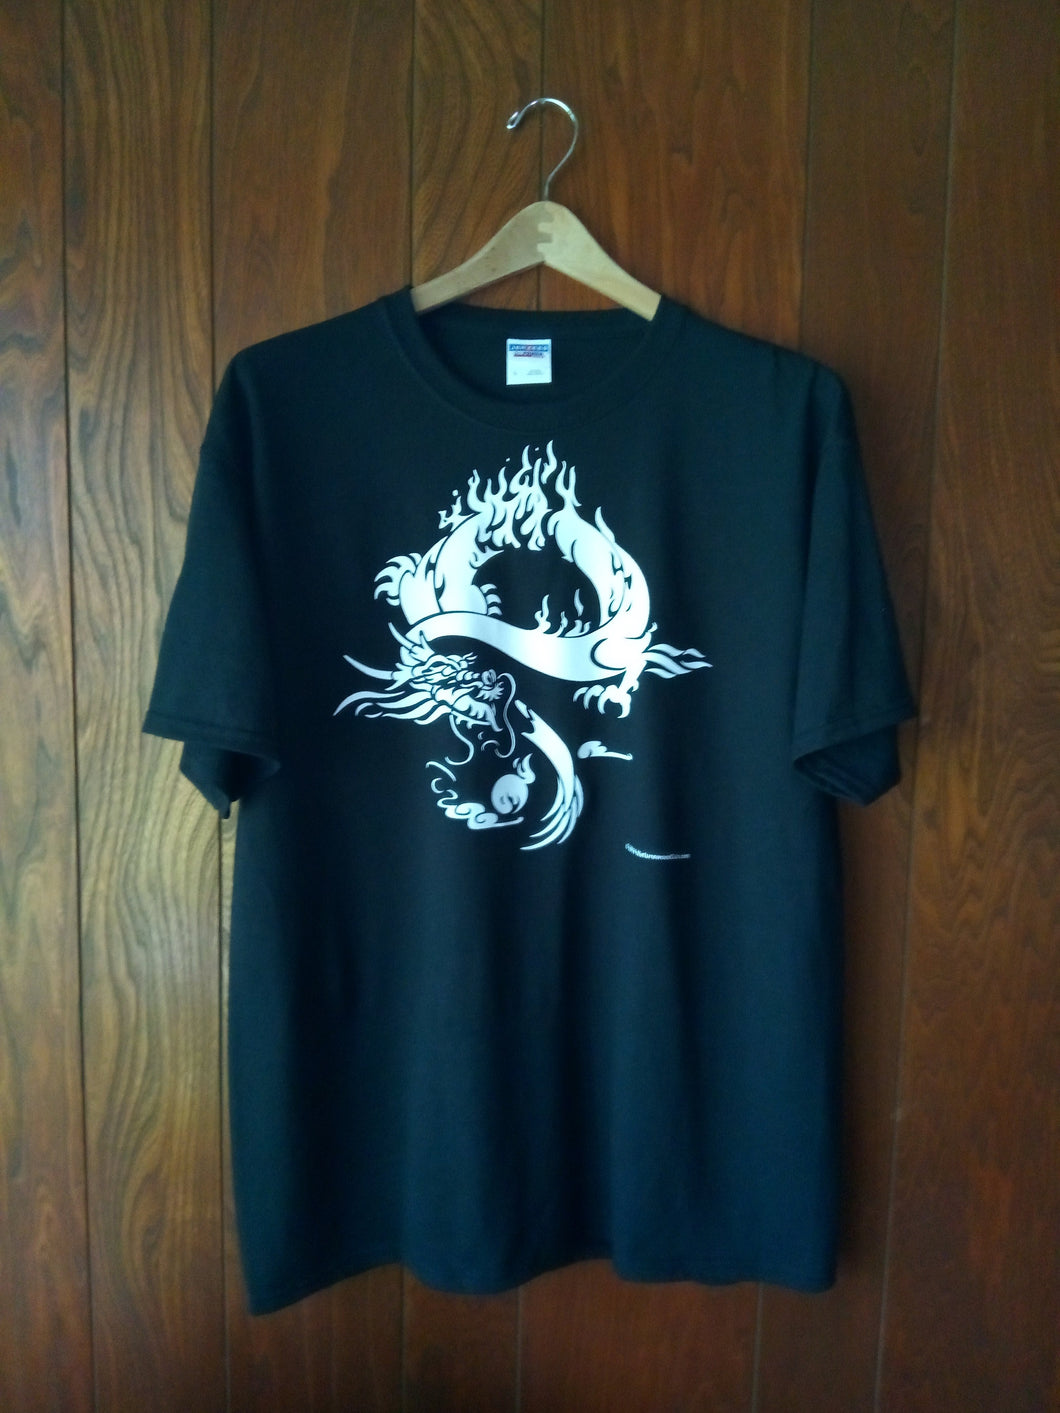 WHITE DRAGON ON BLACK T-SHIRT - AutomotiveFineArt.com